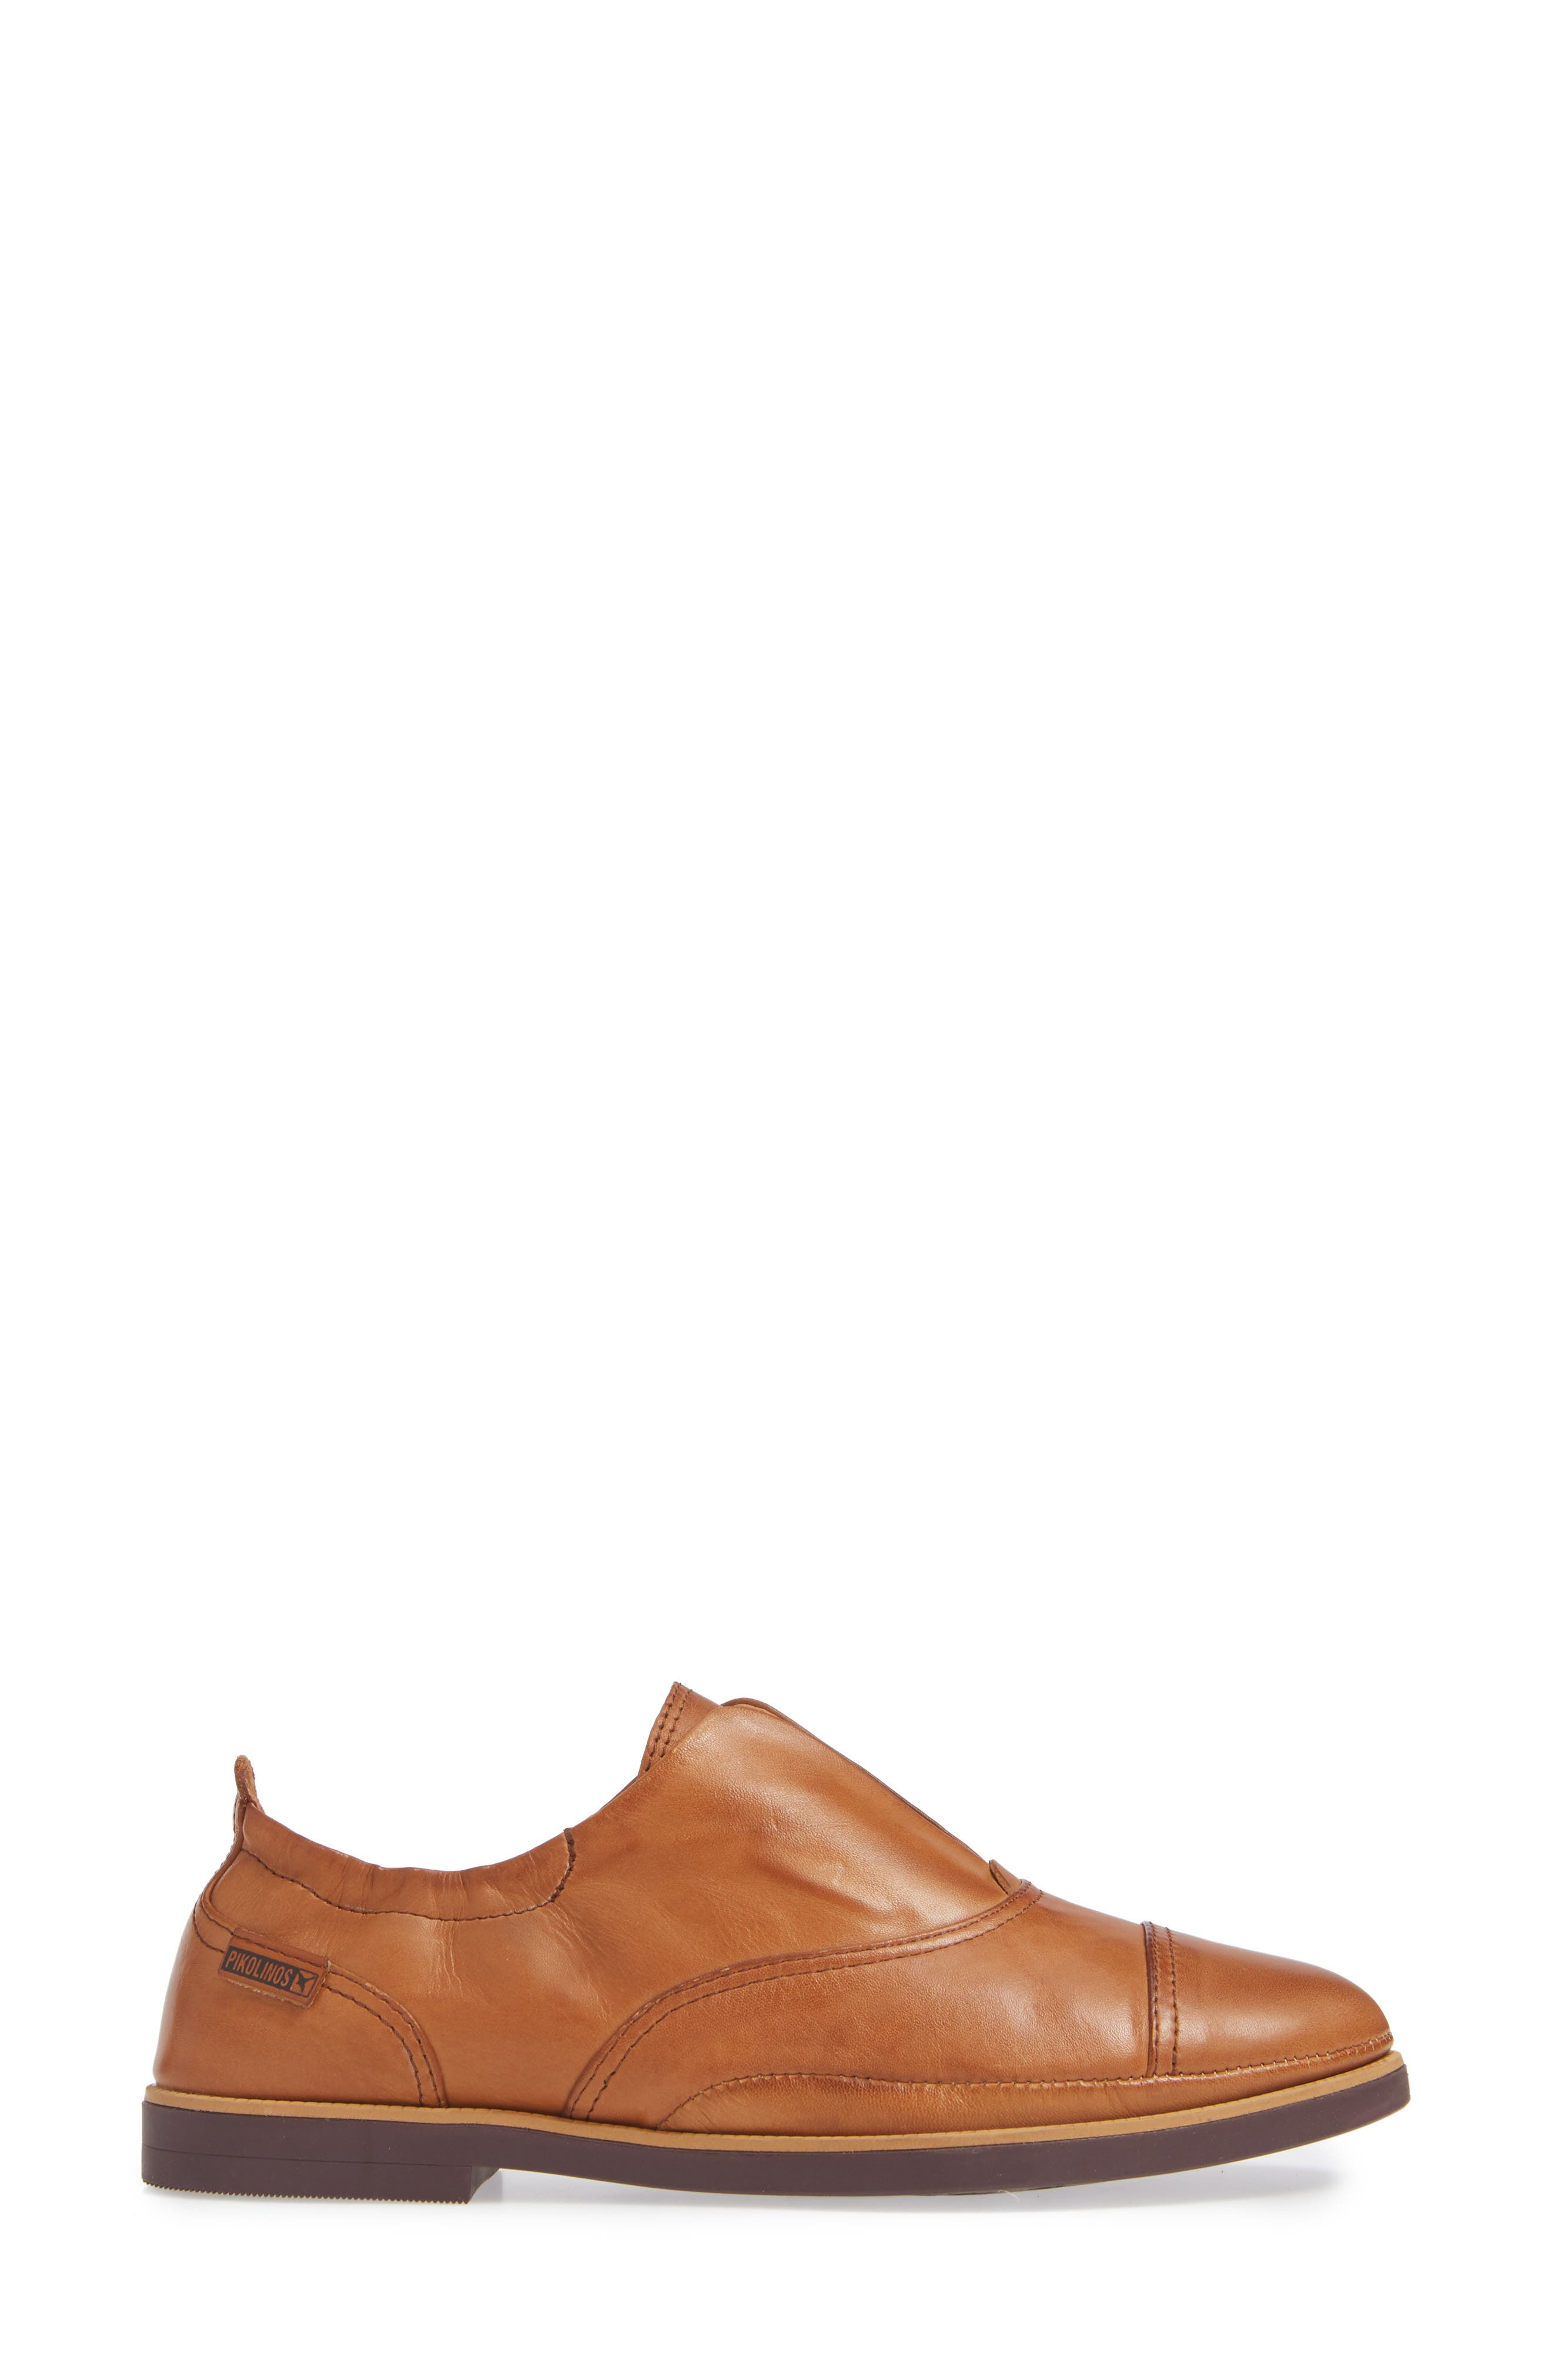 Santorini Colorblock Laceless Oxford,                             Alternate thumbnail 3, color,                             BRANDY LEATHER